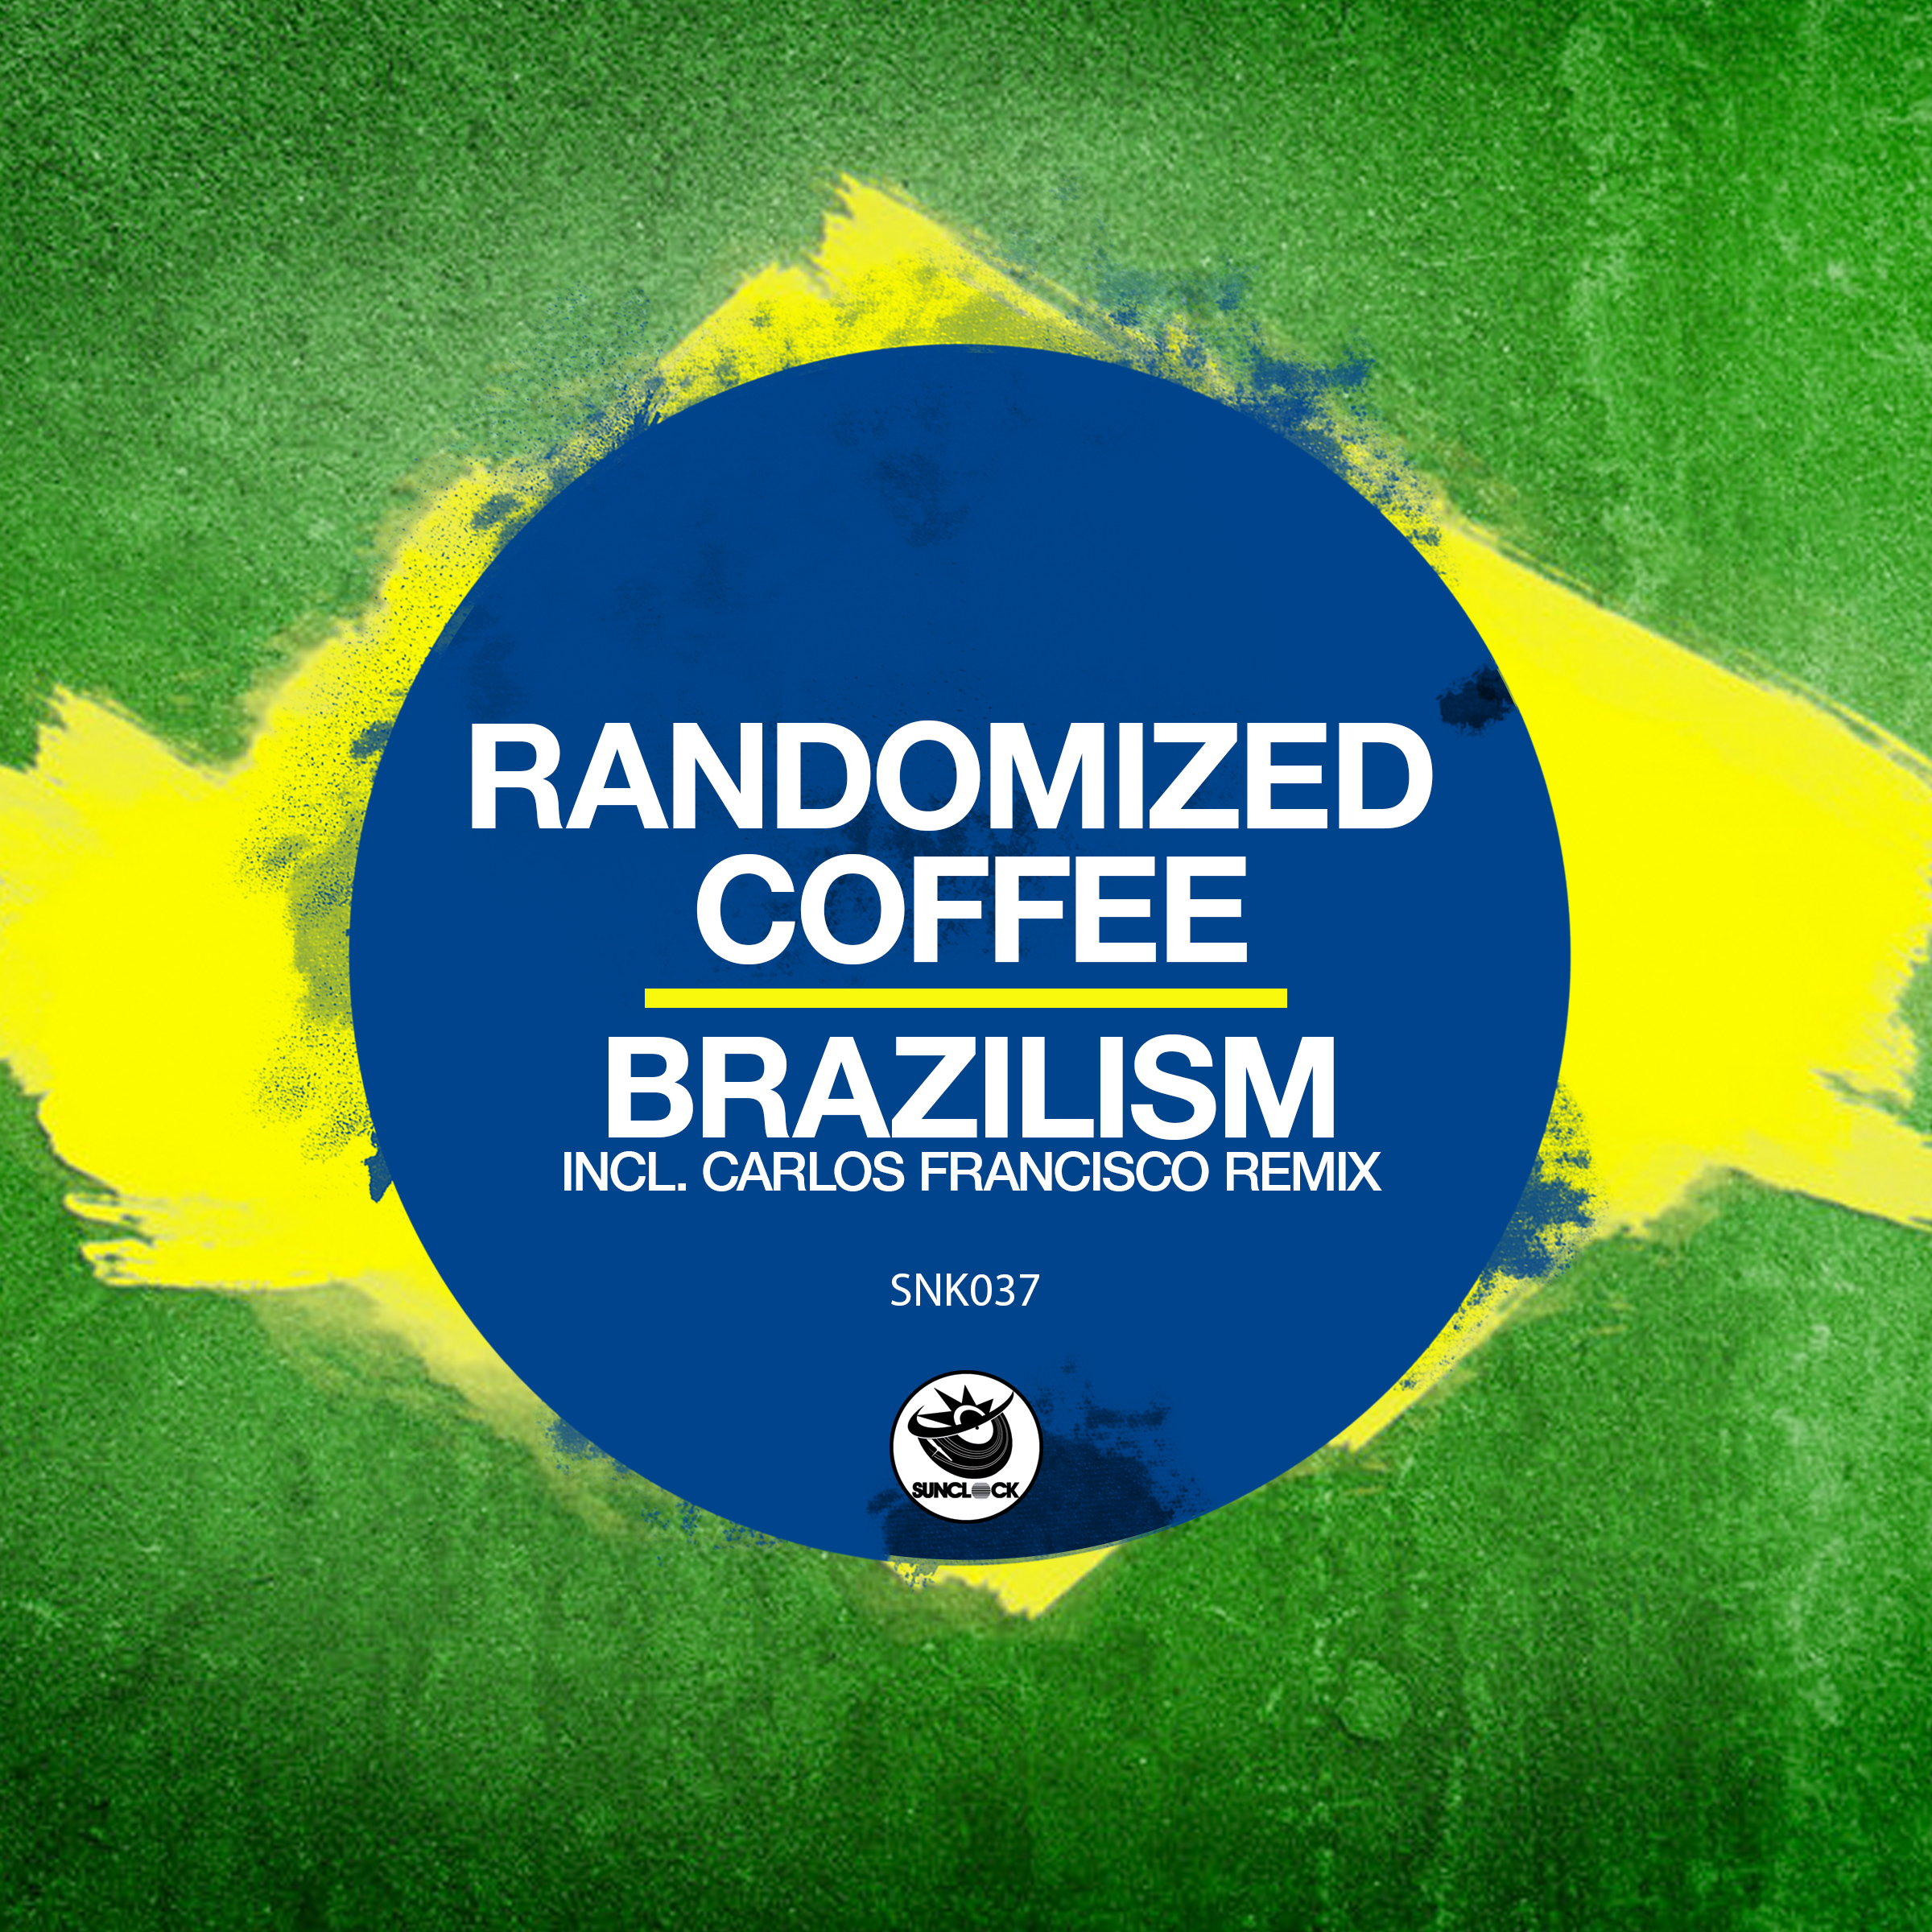 Randomized Coffee - Brazilism (incl. Carlos Francisco Remix) - SNK037 Cover